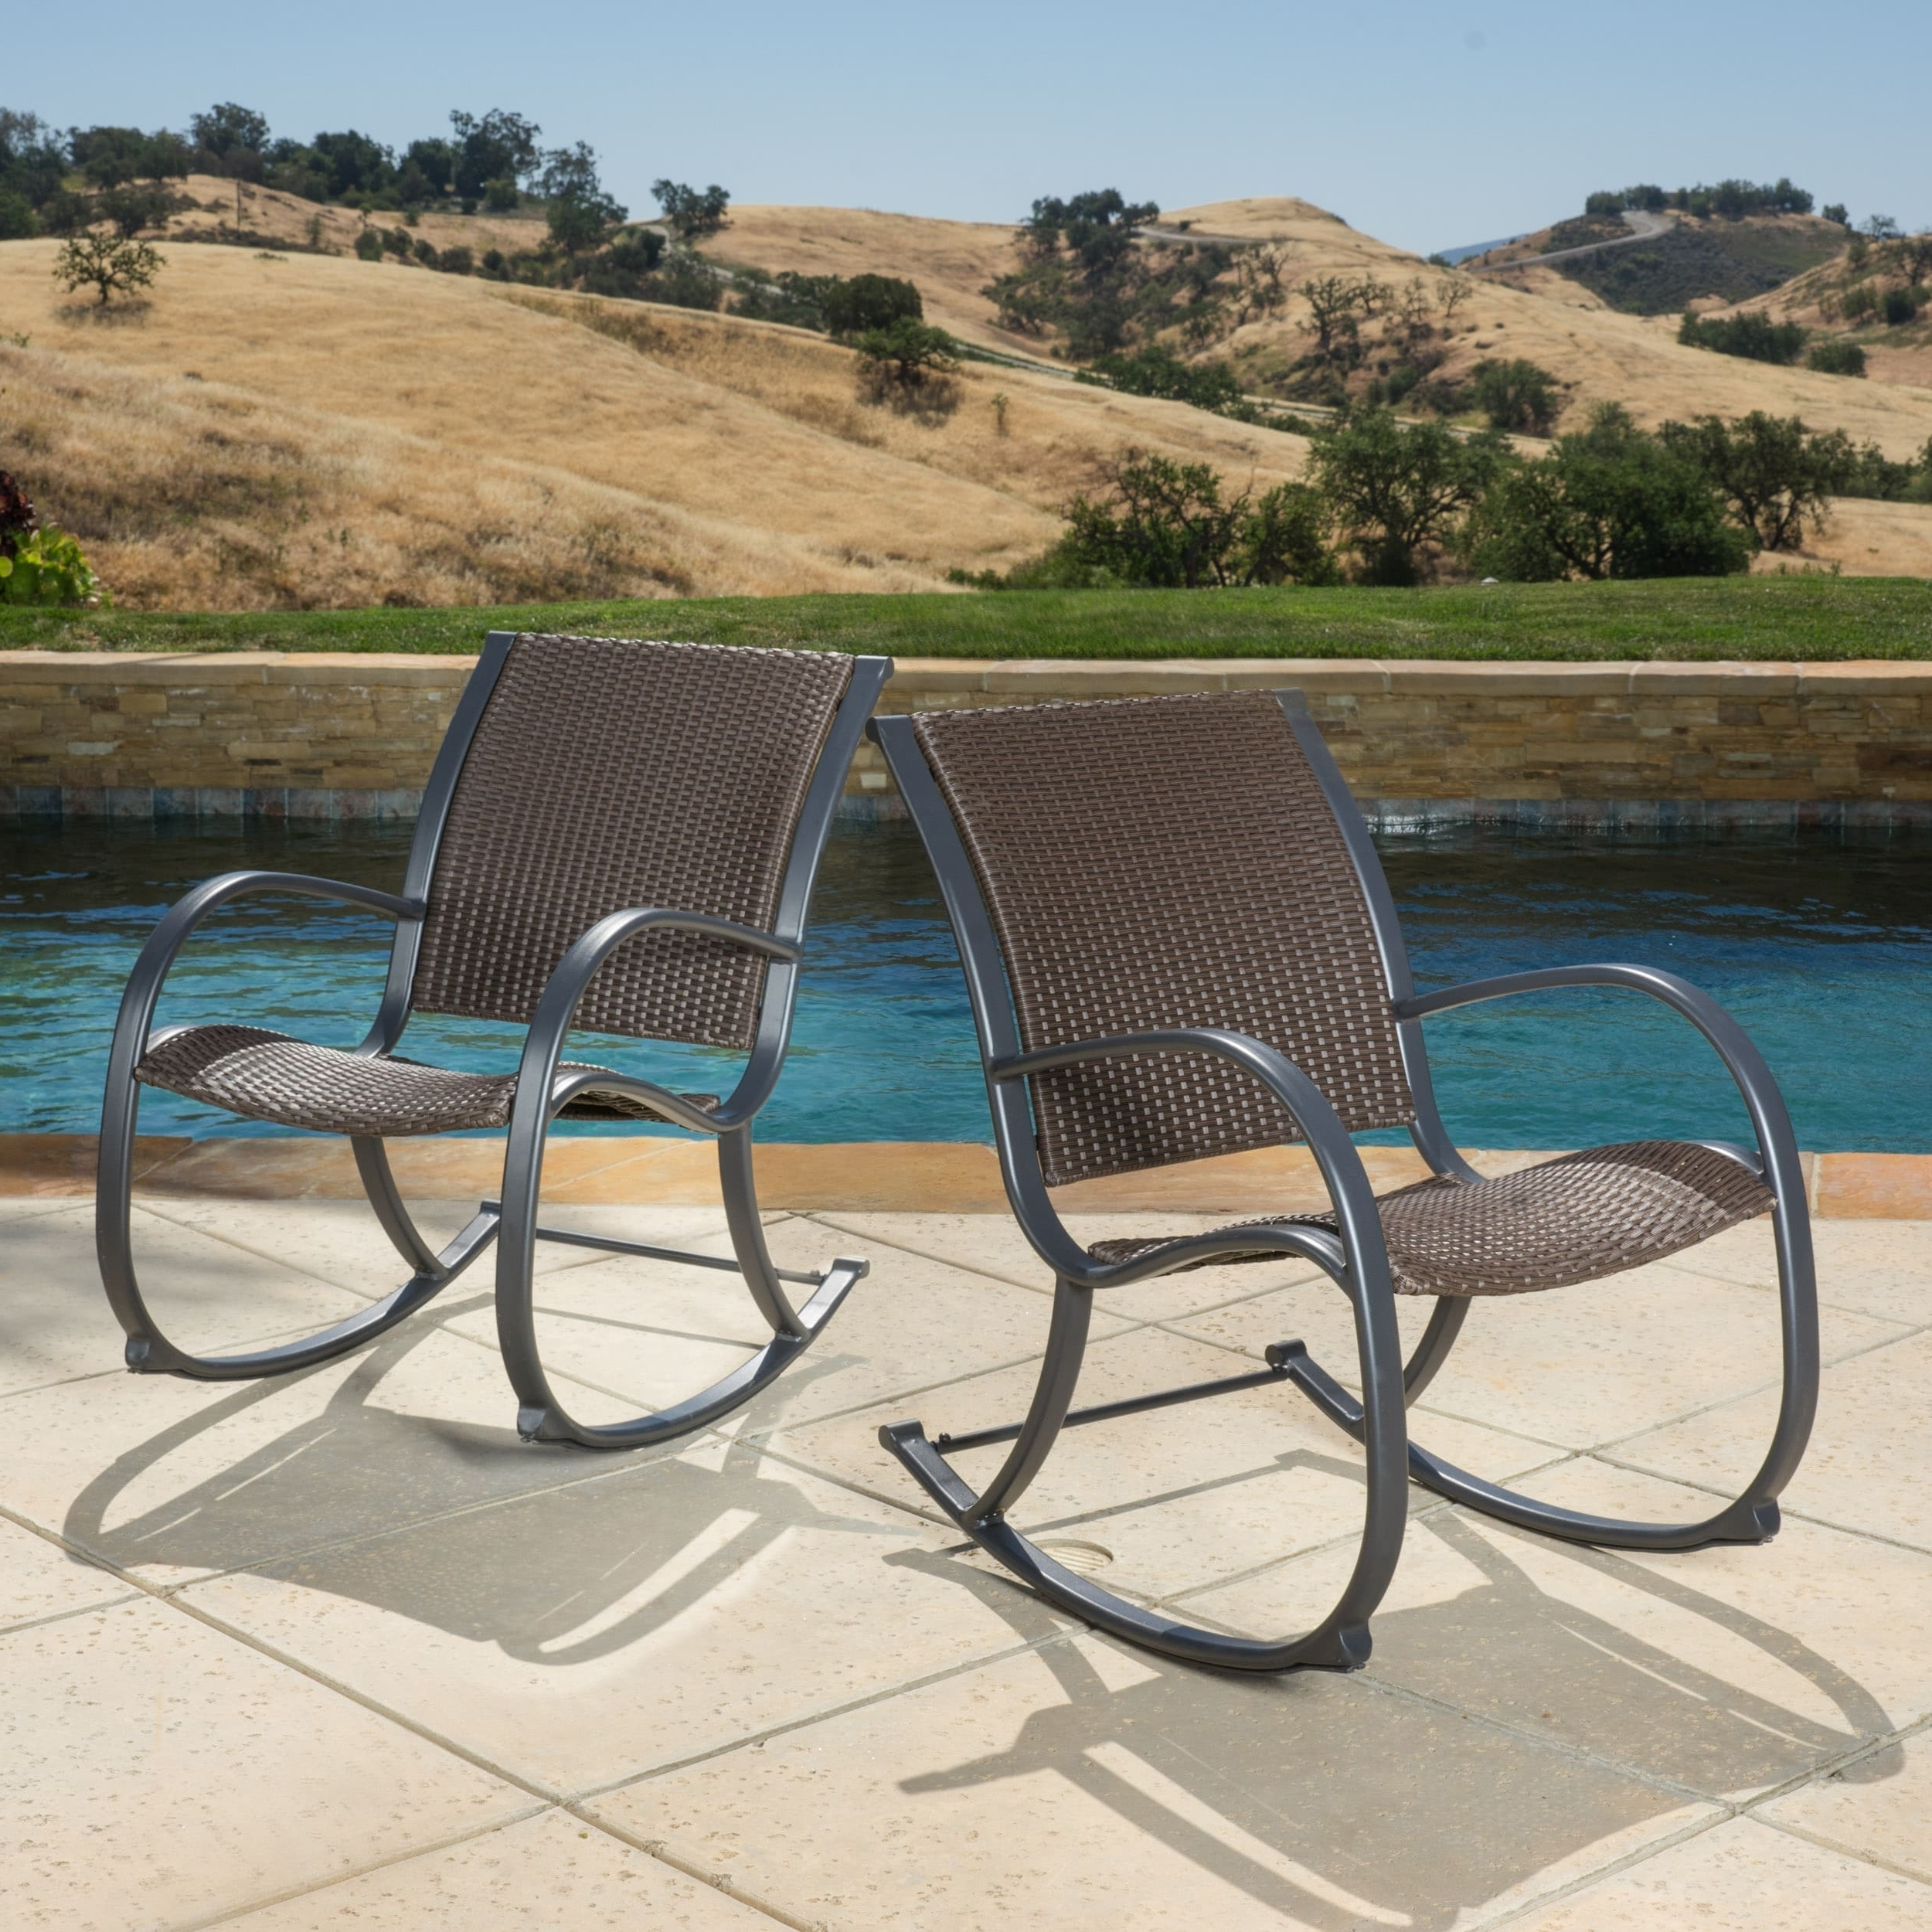 Shop Gracie's Outdoor Wicker Rocking Chair (Set Of 2)Christopher Within Popular Wicker Rocking Chairs For Outdoors (View 13 of 15)